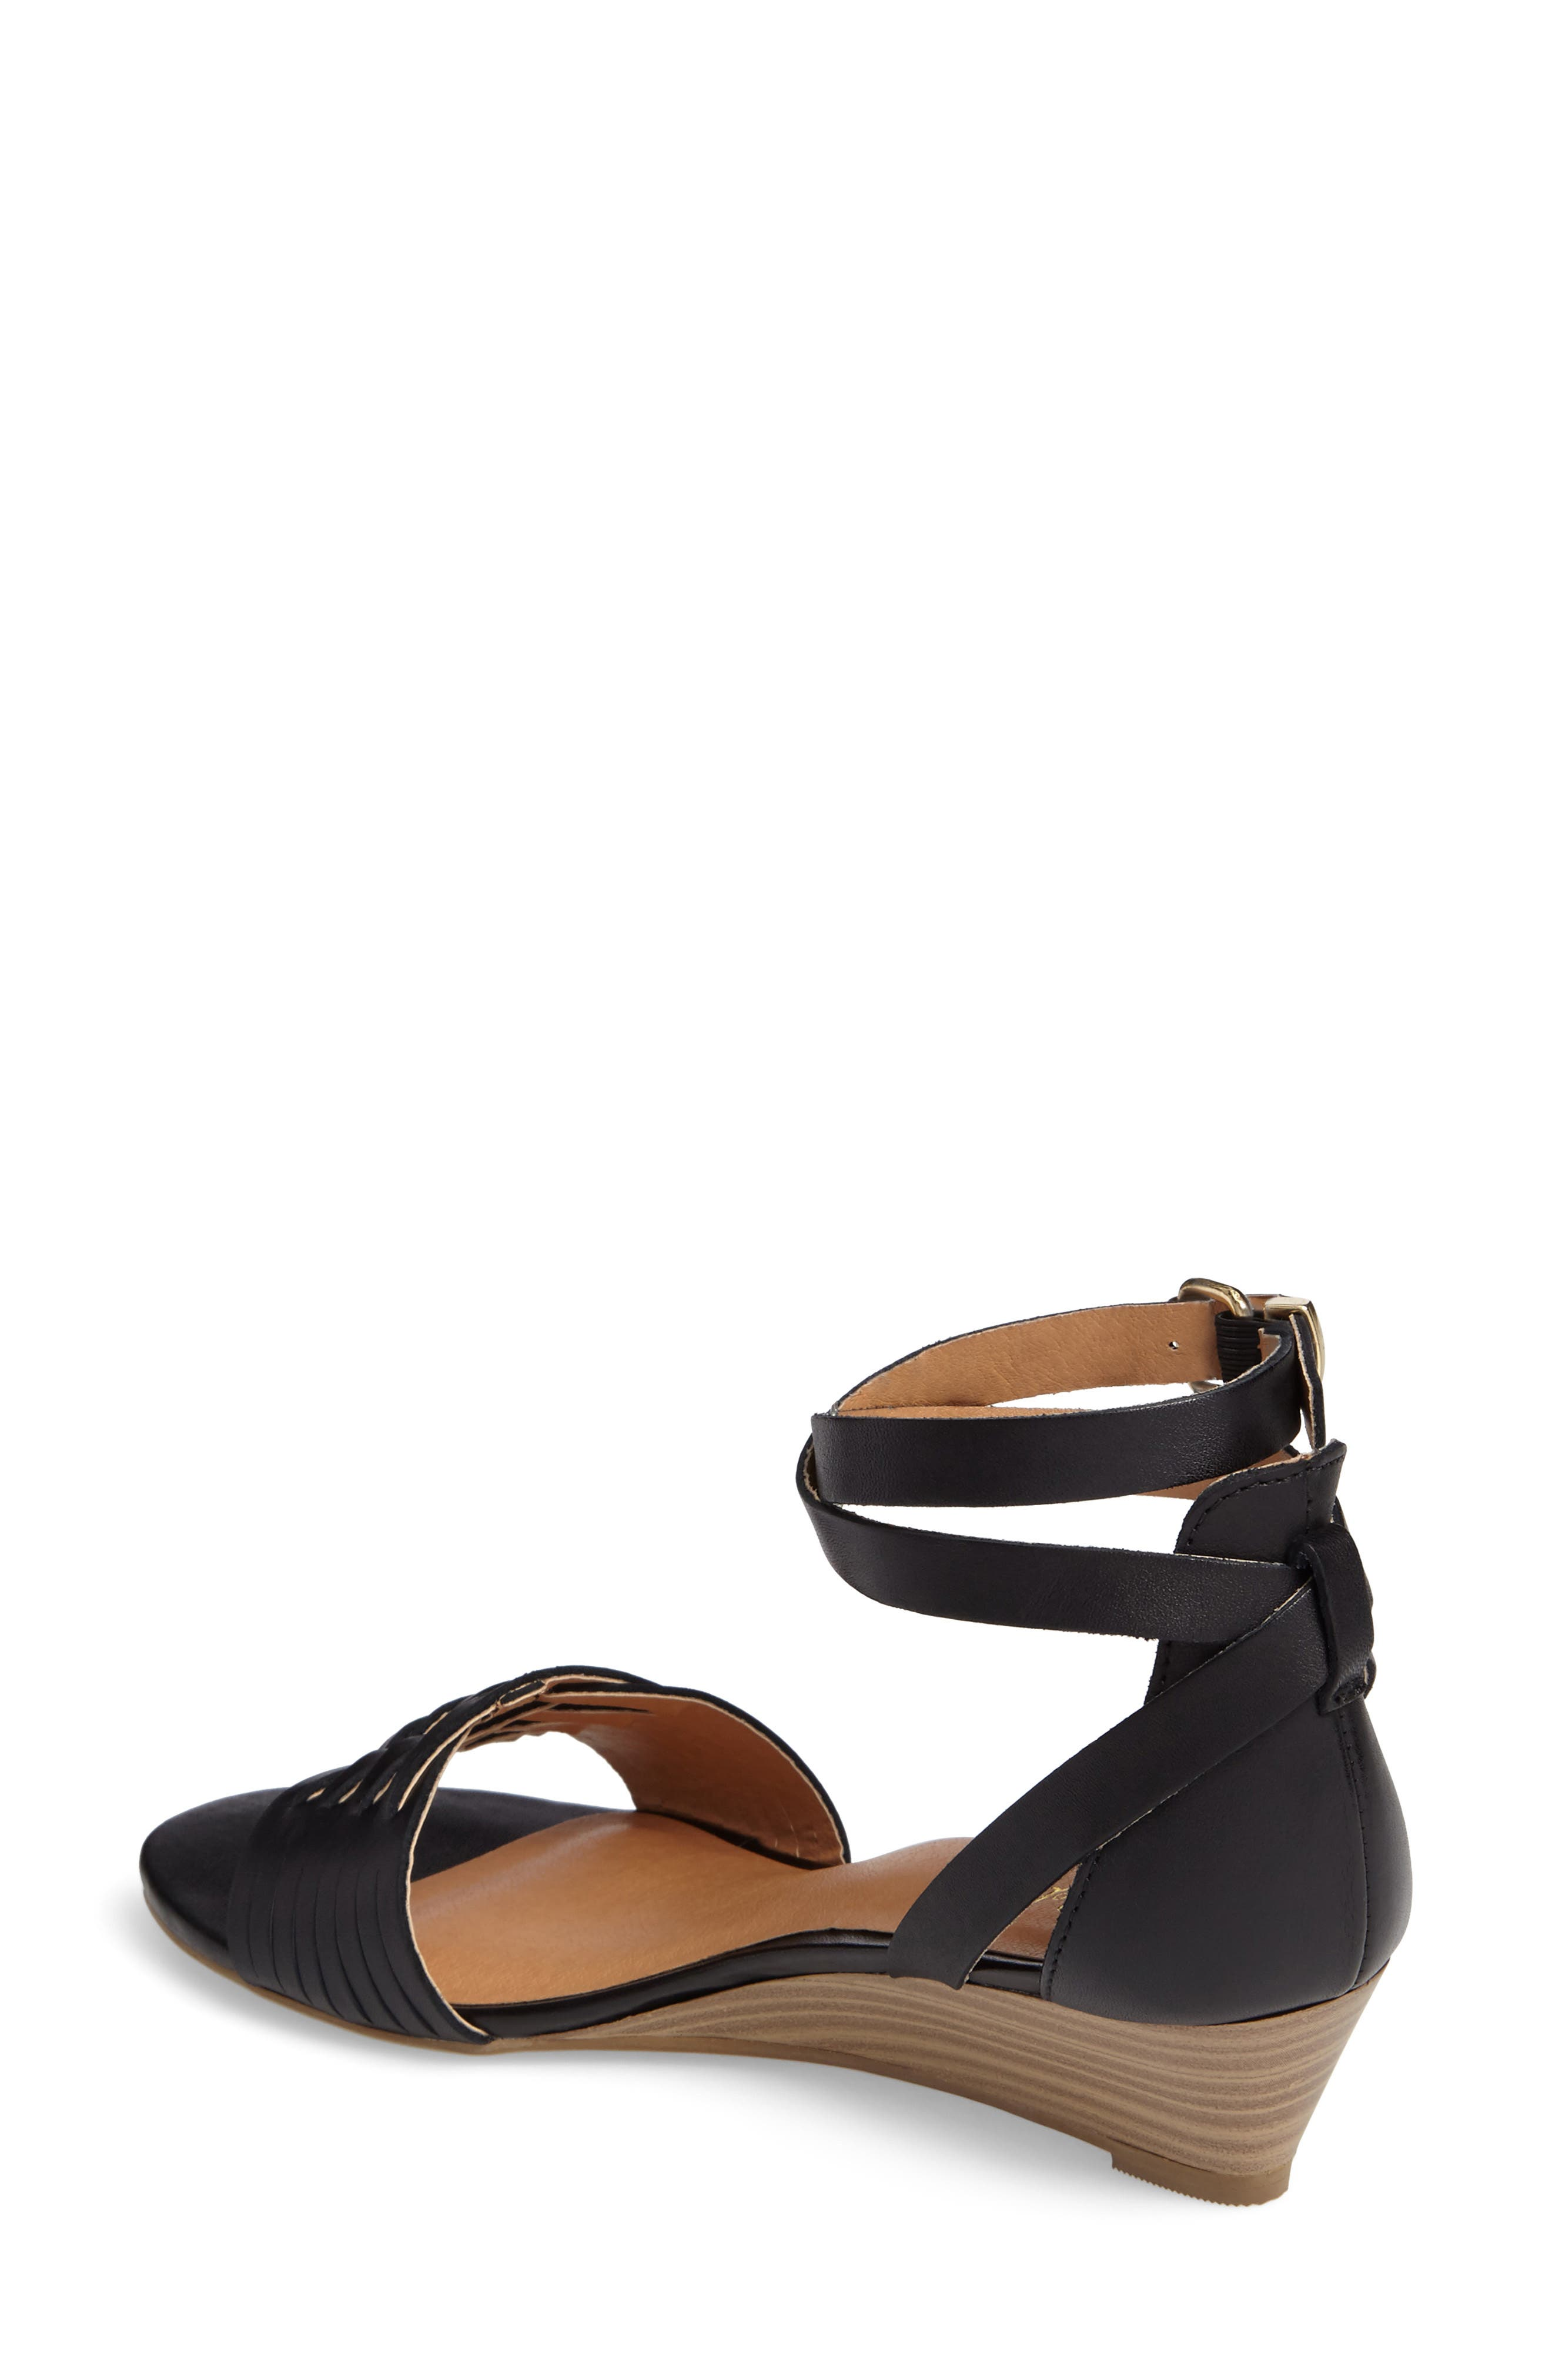 Sincere Wraparound Wedge Sandal,                             Alternate thumbnail 3, color,